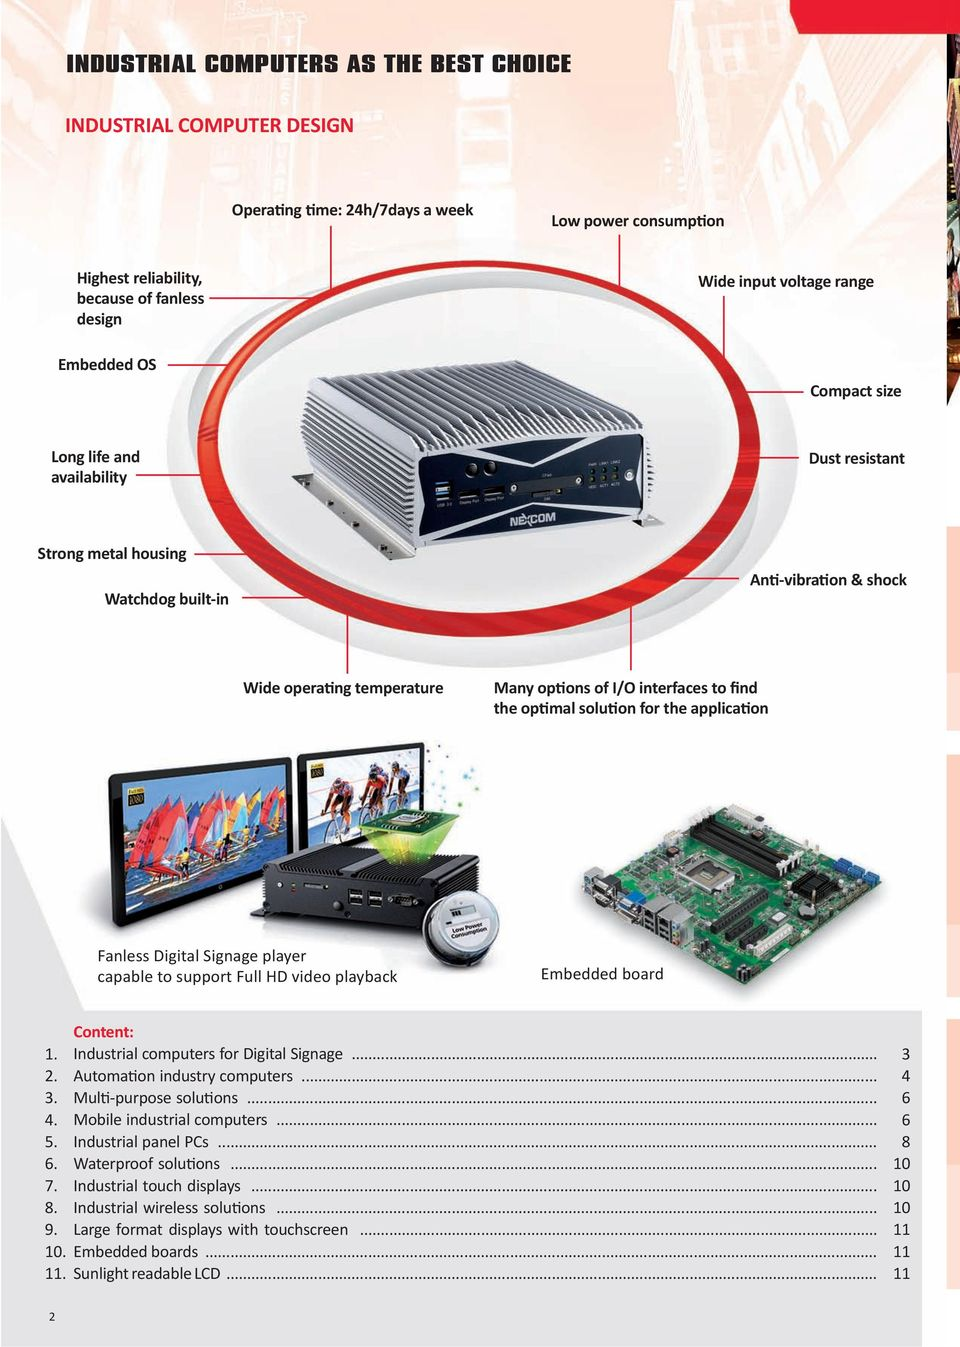 optimal solution for the application Fanless Digital Signage player capable to support Full HD video playback Embedded board 1. 2. 3. 4. 5. 6. 7. 8. 9. 10. 11.